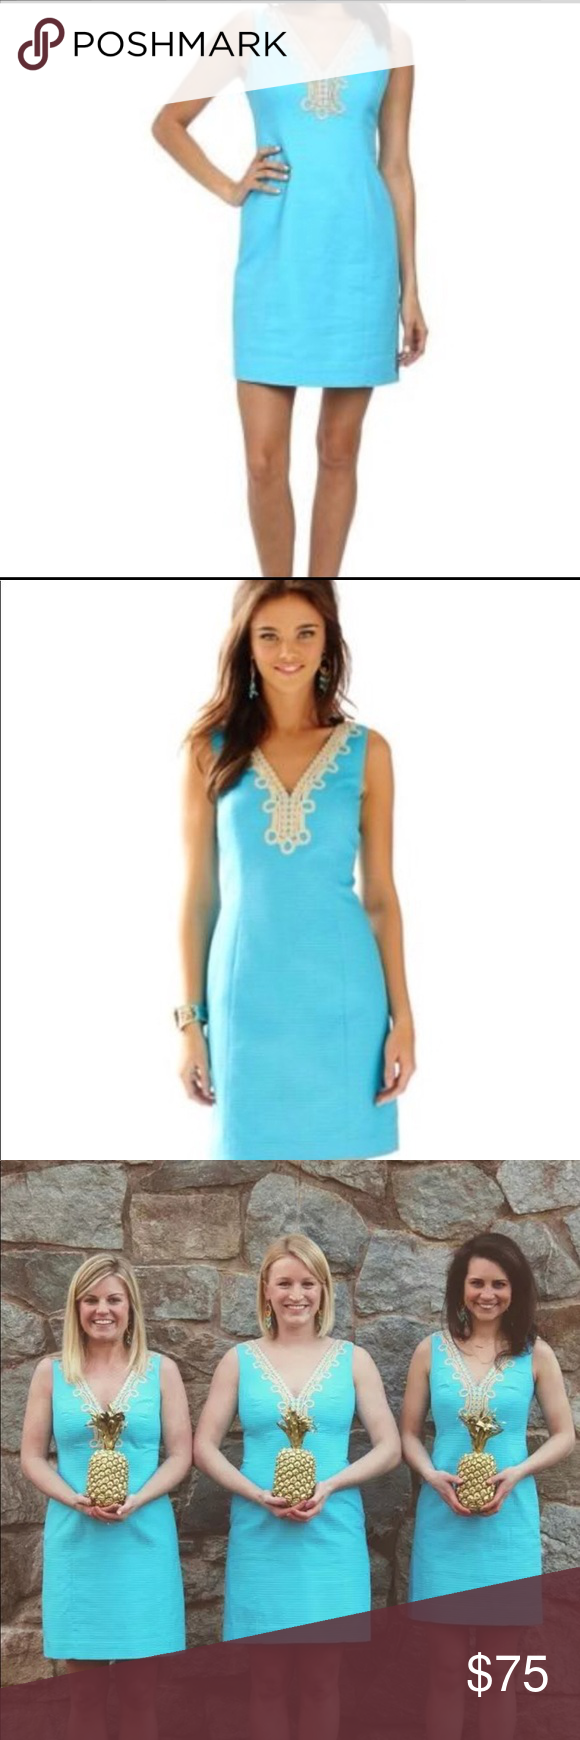 Lilly Pulitzer Bentley Dress With Gold Embroidery Lilly Pulitzer Clothes Design Lilly Pulitzer Dress [ 1740 x 580 Pixel ]